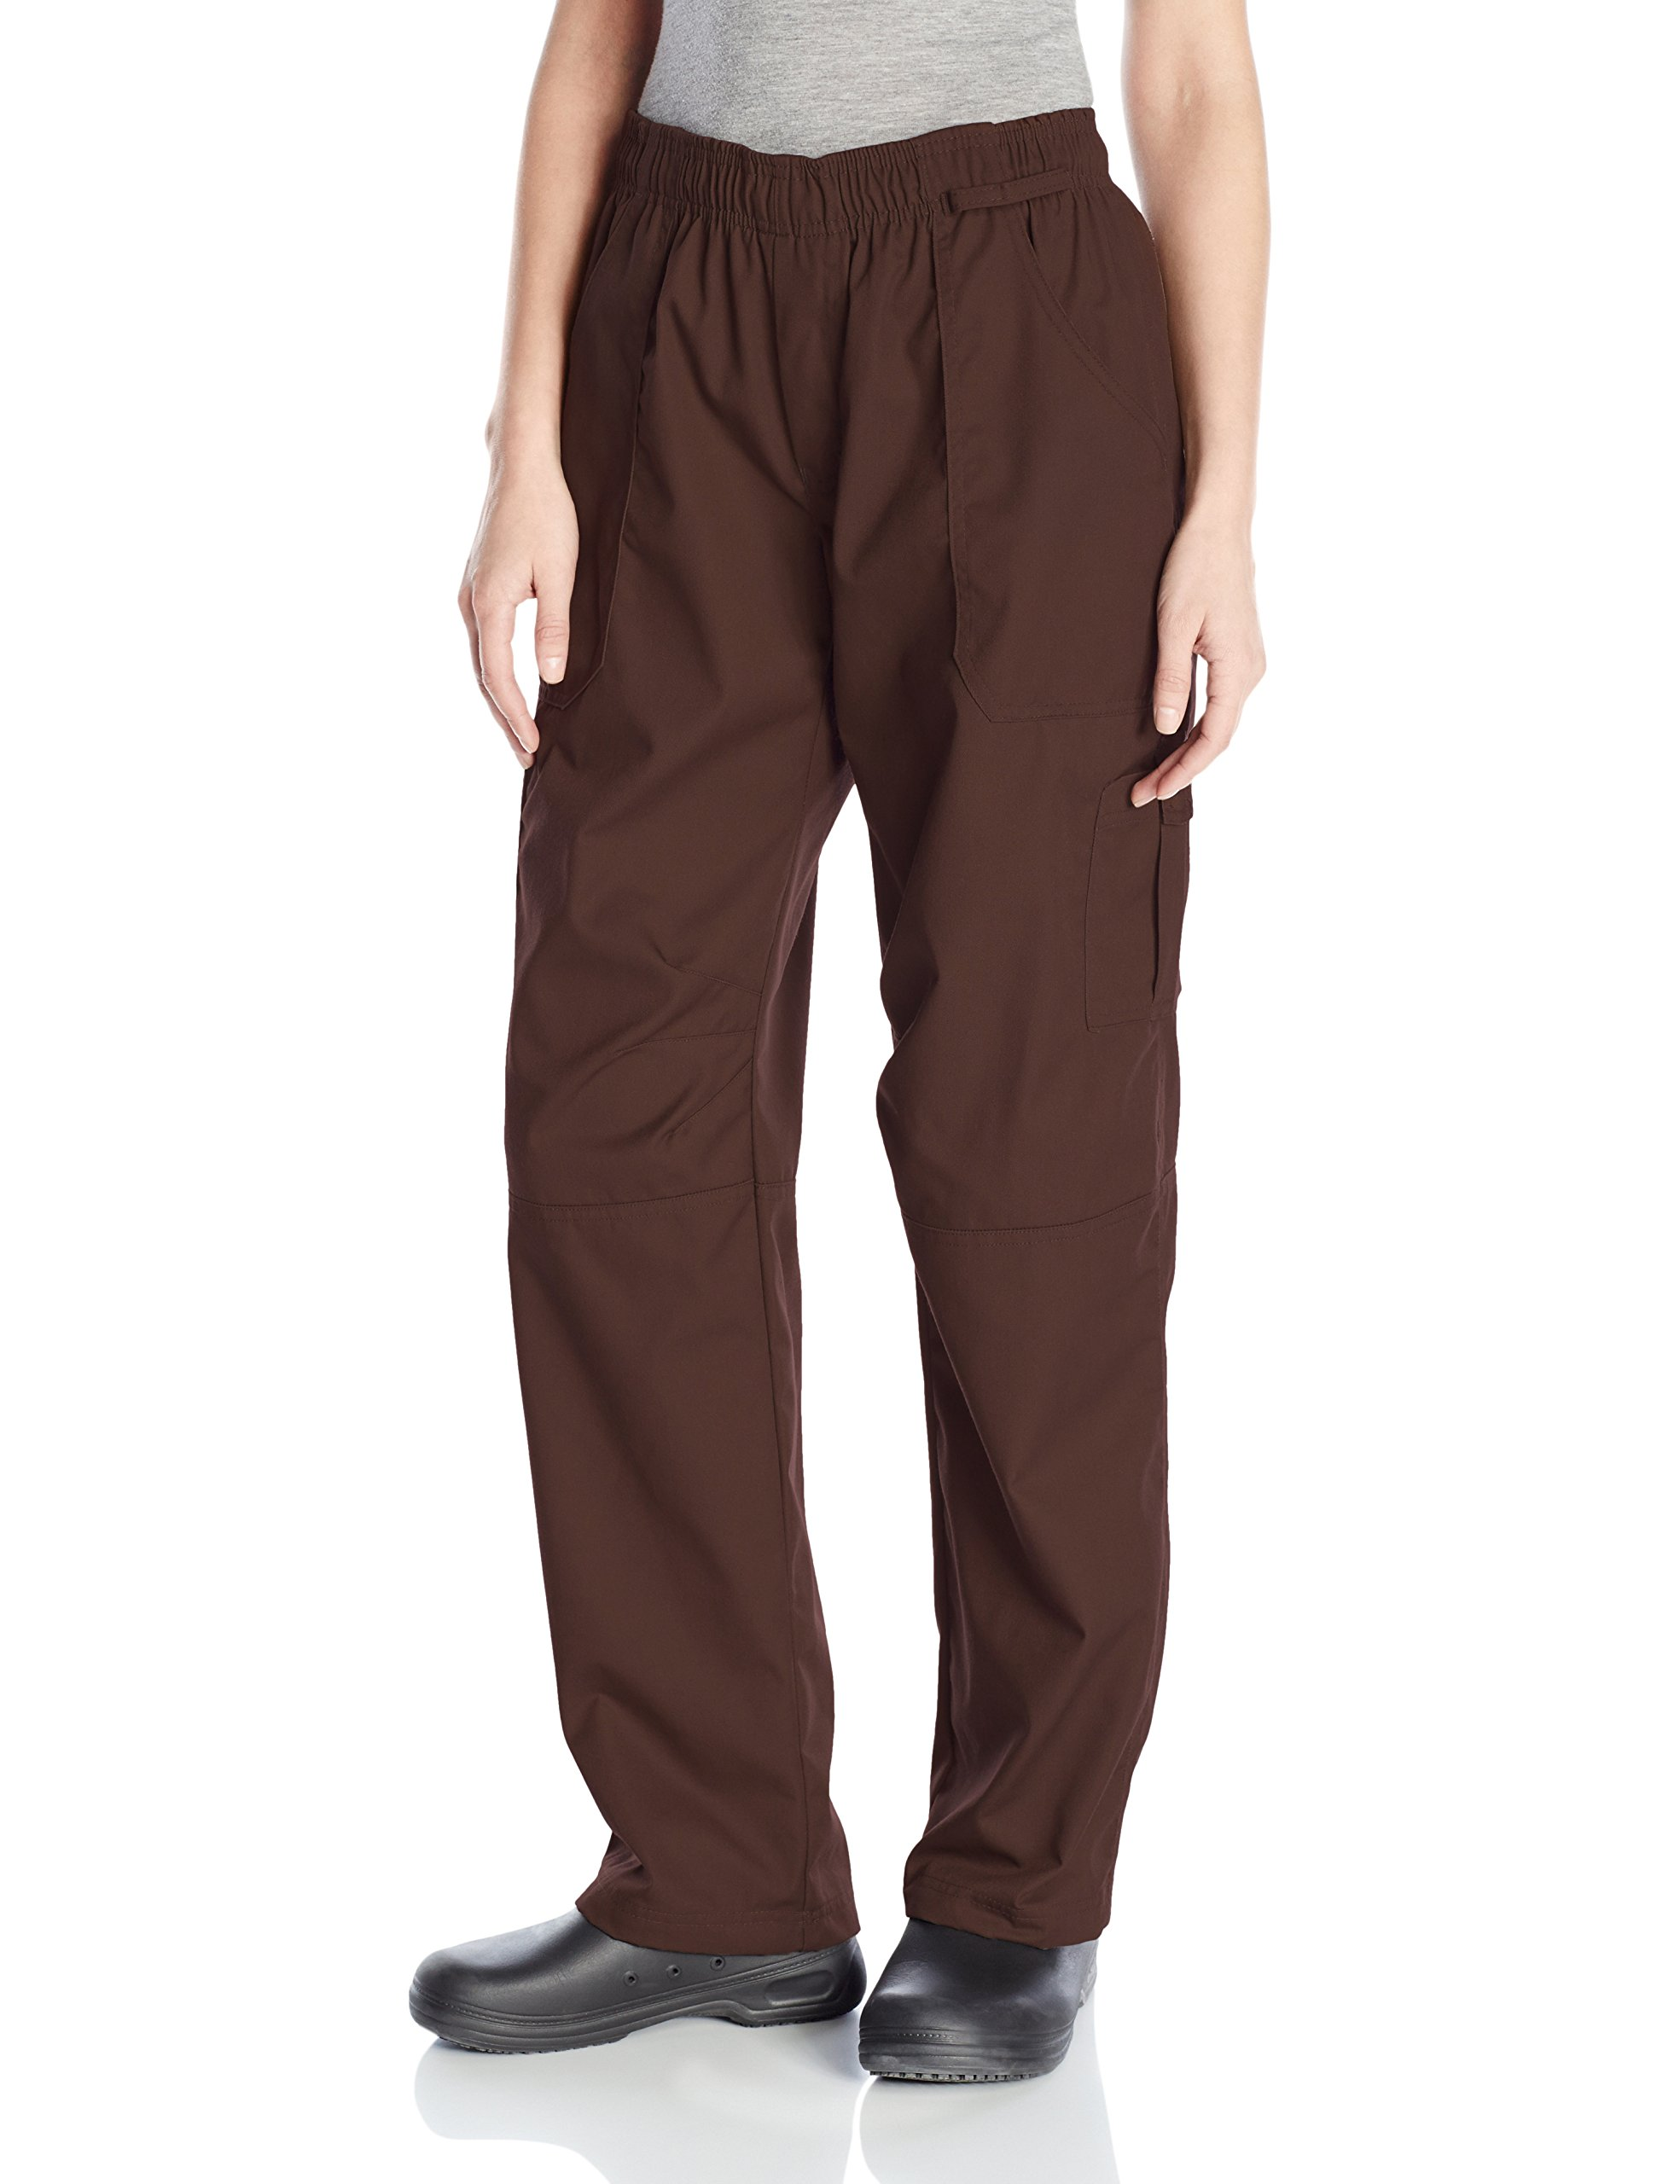 Uncommon Threads Unisex Grunge Cargo Chef Pant, Brown, X-Small by Uncommon Threads